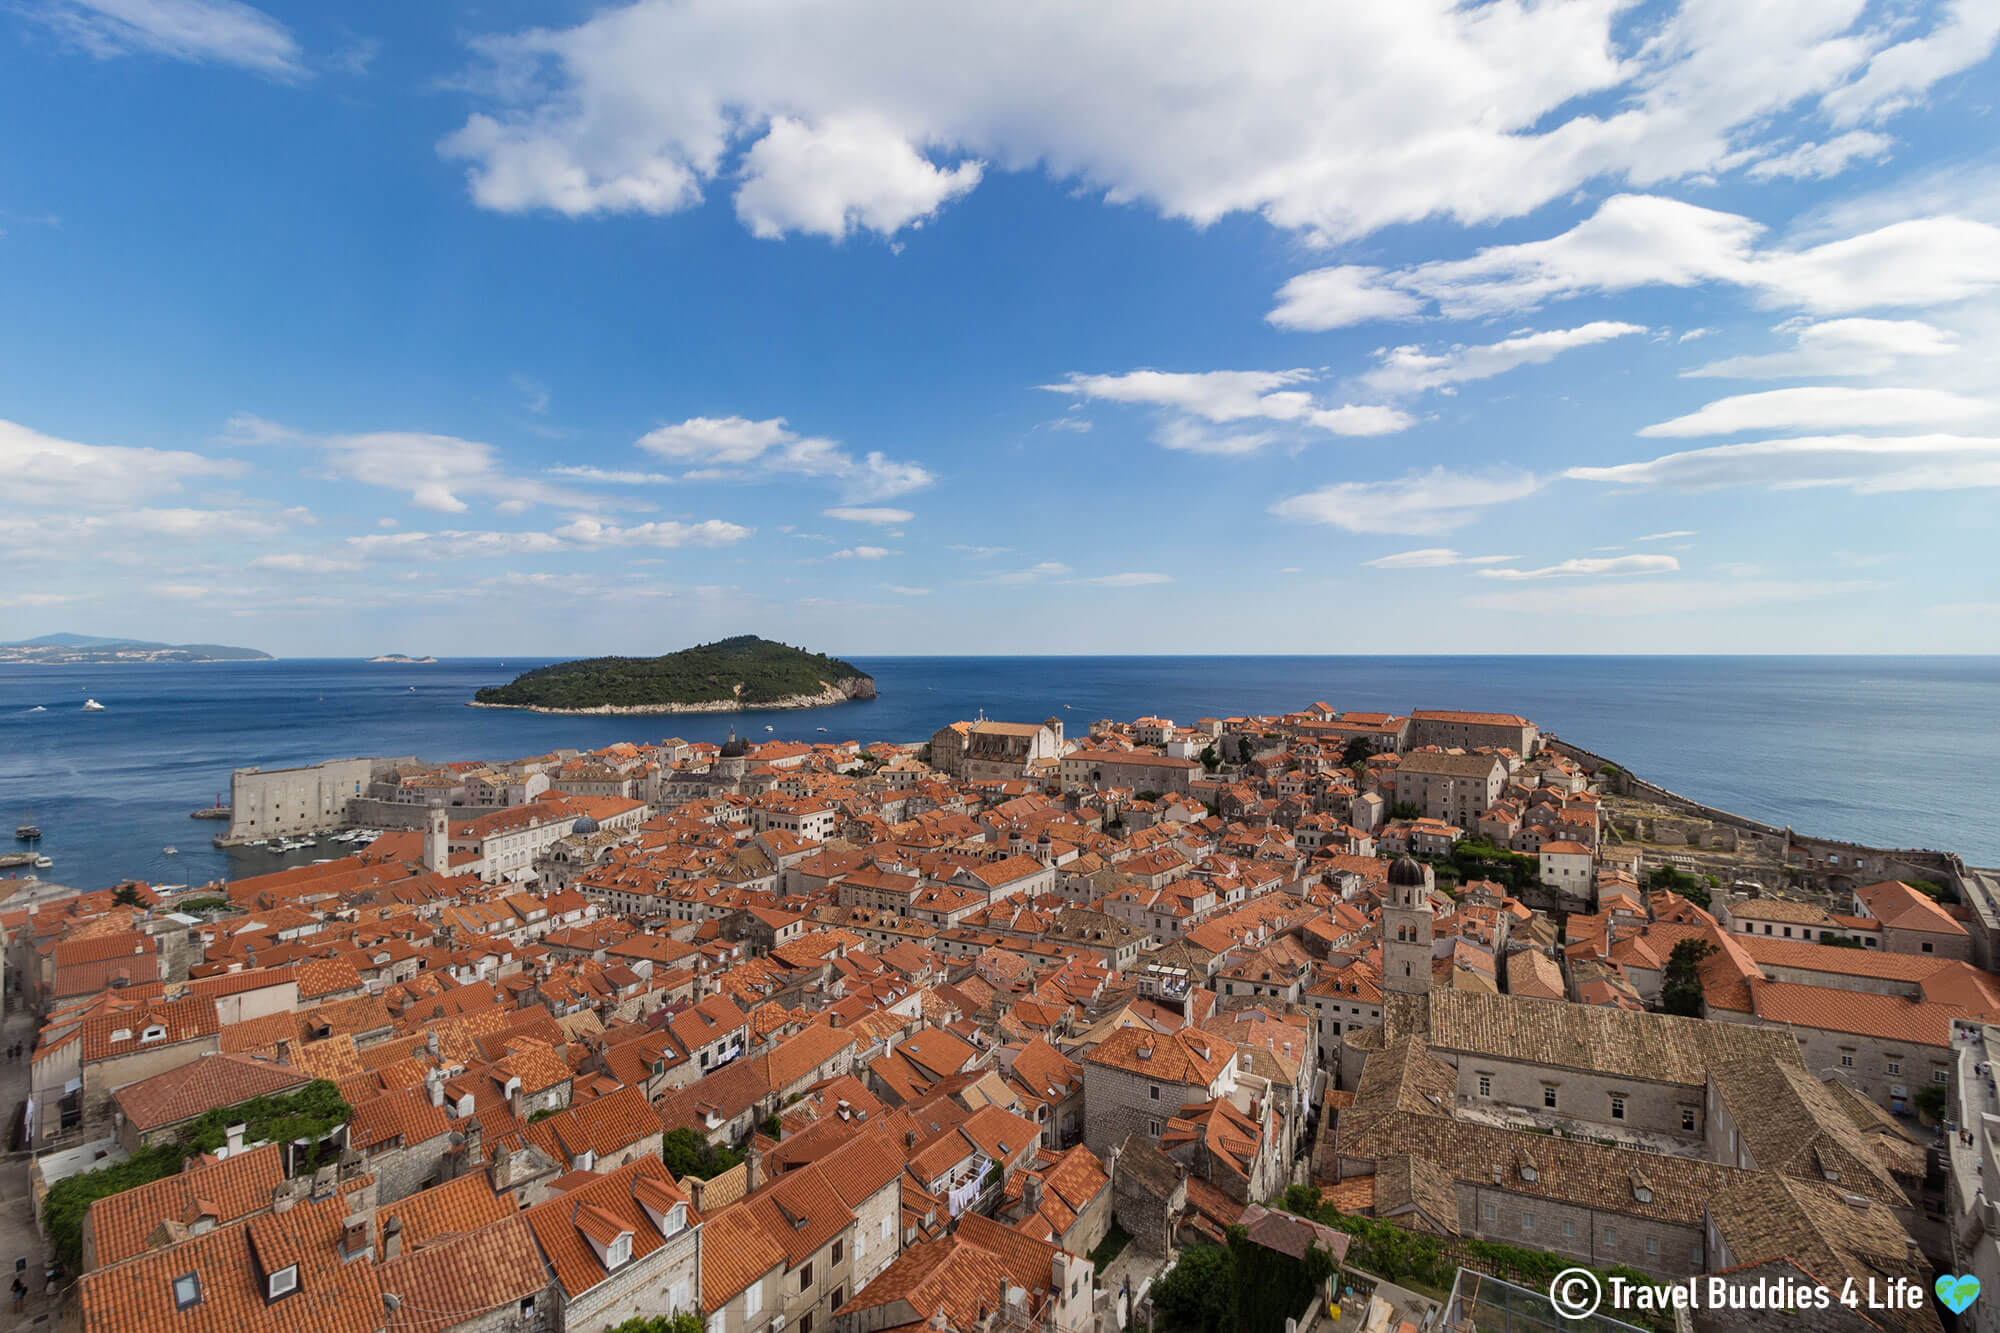 Checking out the Rooftops from the Dubrovnik Wall